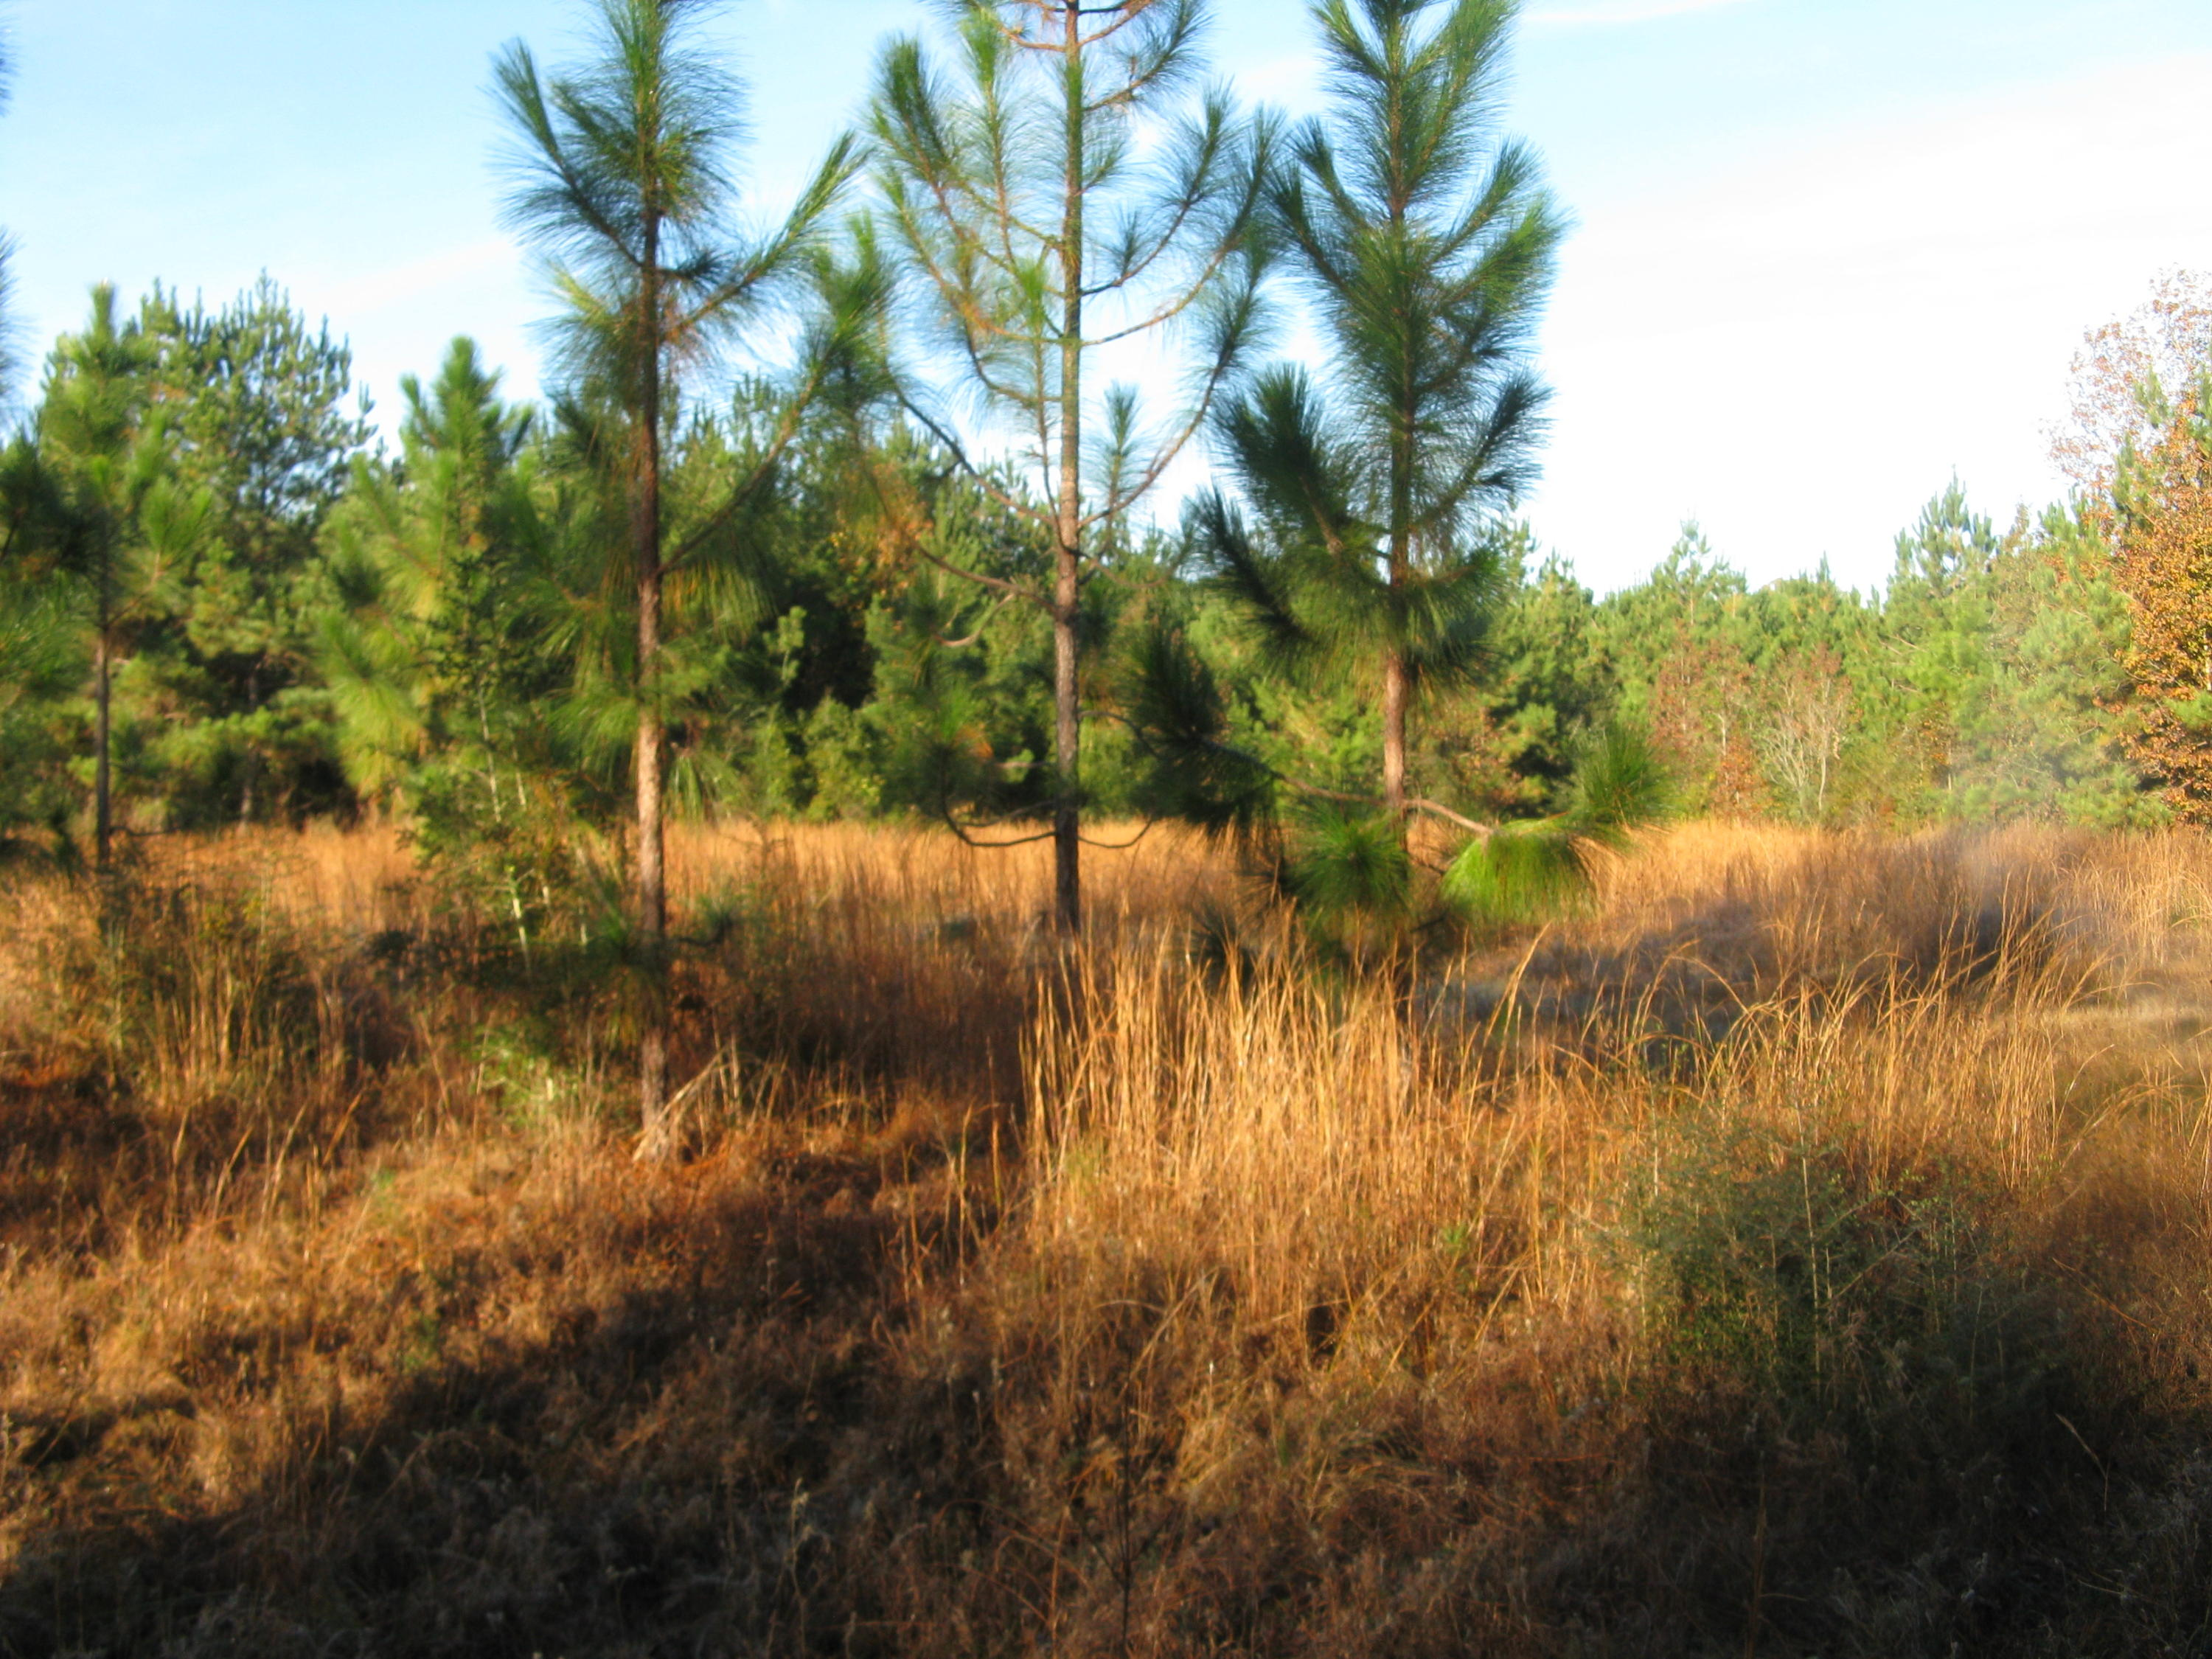 DeRidder land for sale,  TBD RUTHERFORD RD, DeRidder LA - $197,500